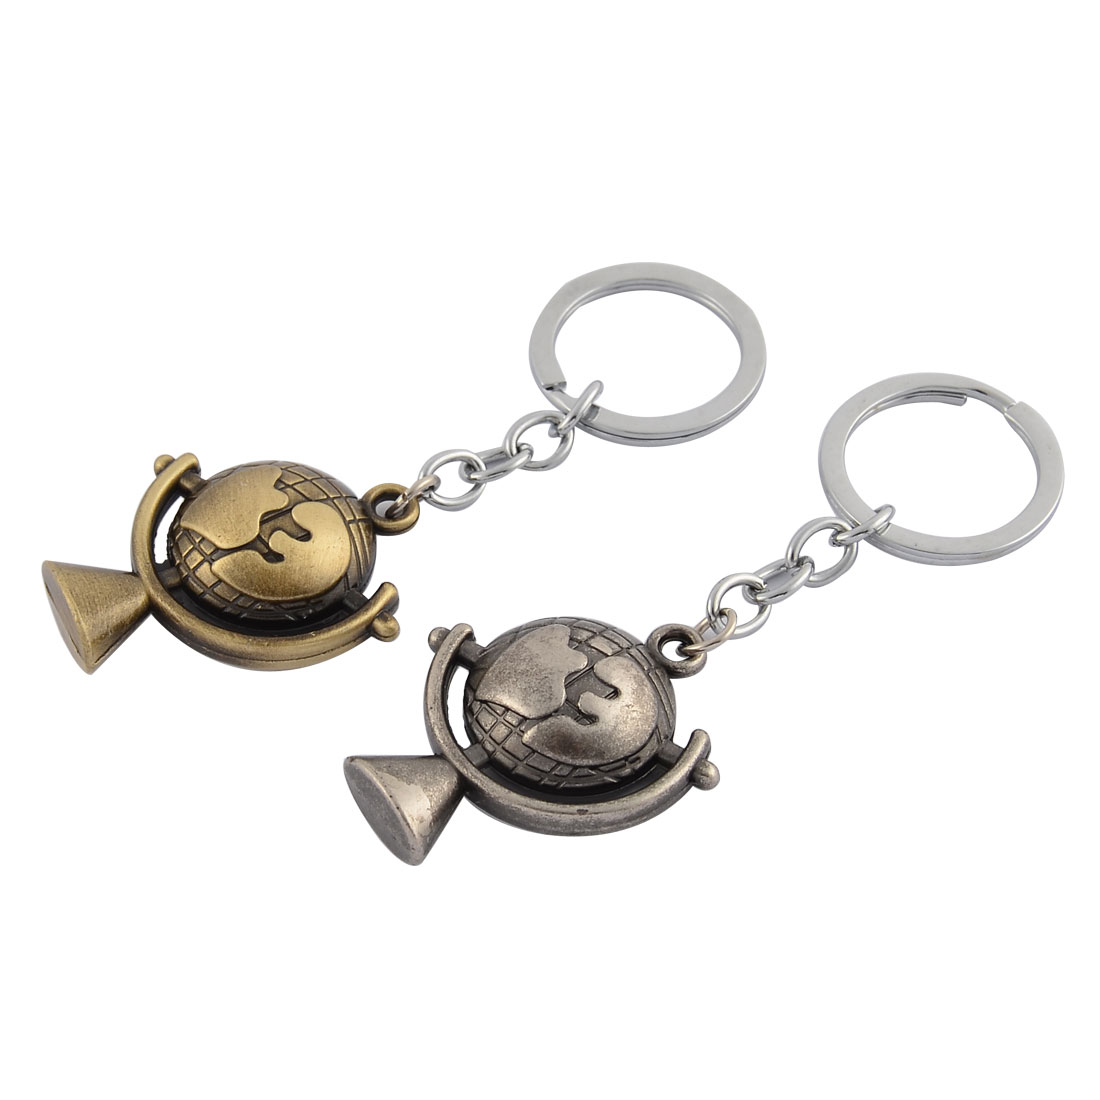 Metal Tellurion Design Pendant Ornament Key Chain 9.5cm Length 2 Pcs